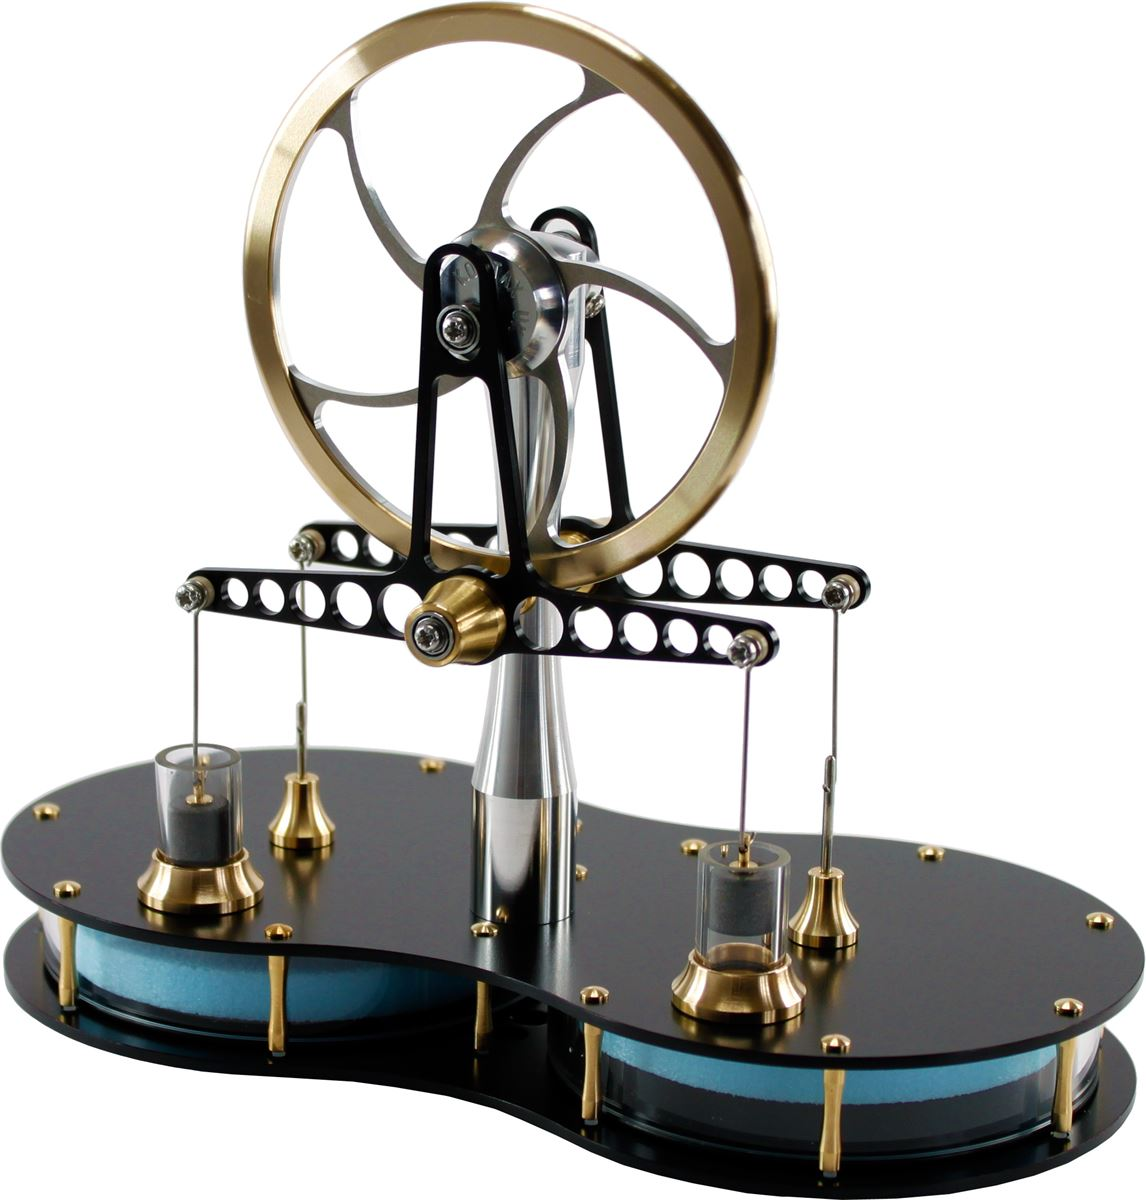 Twin cylinder Stirling engine